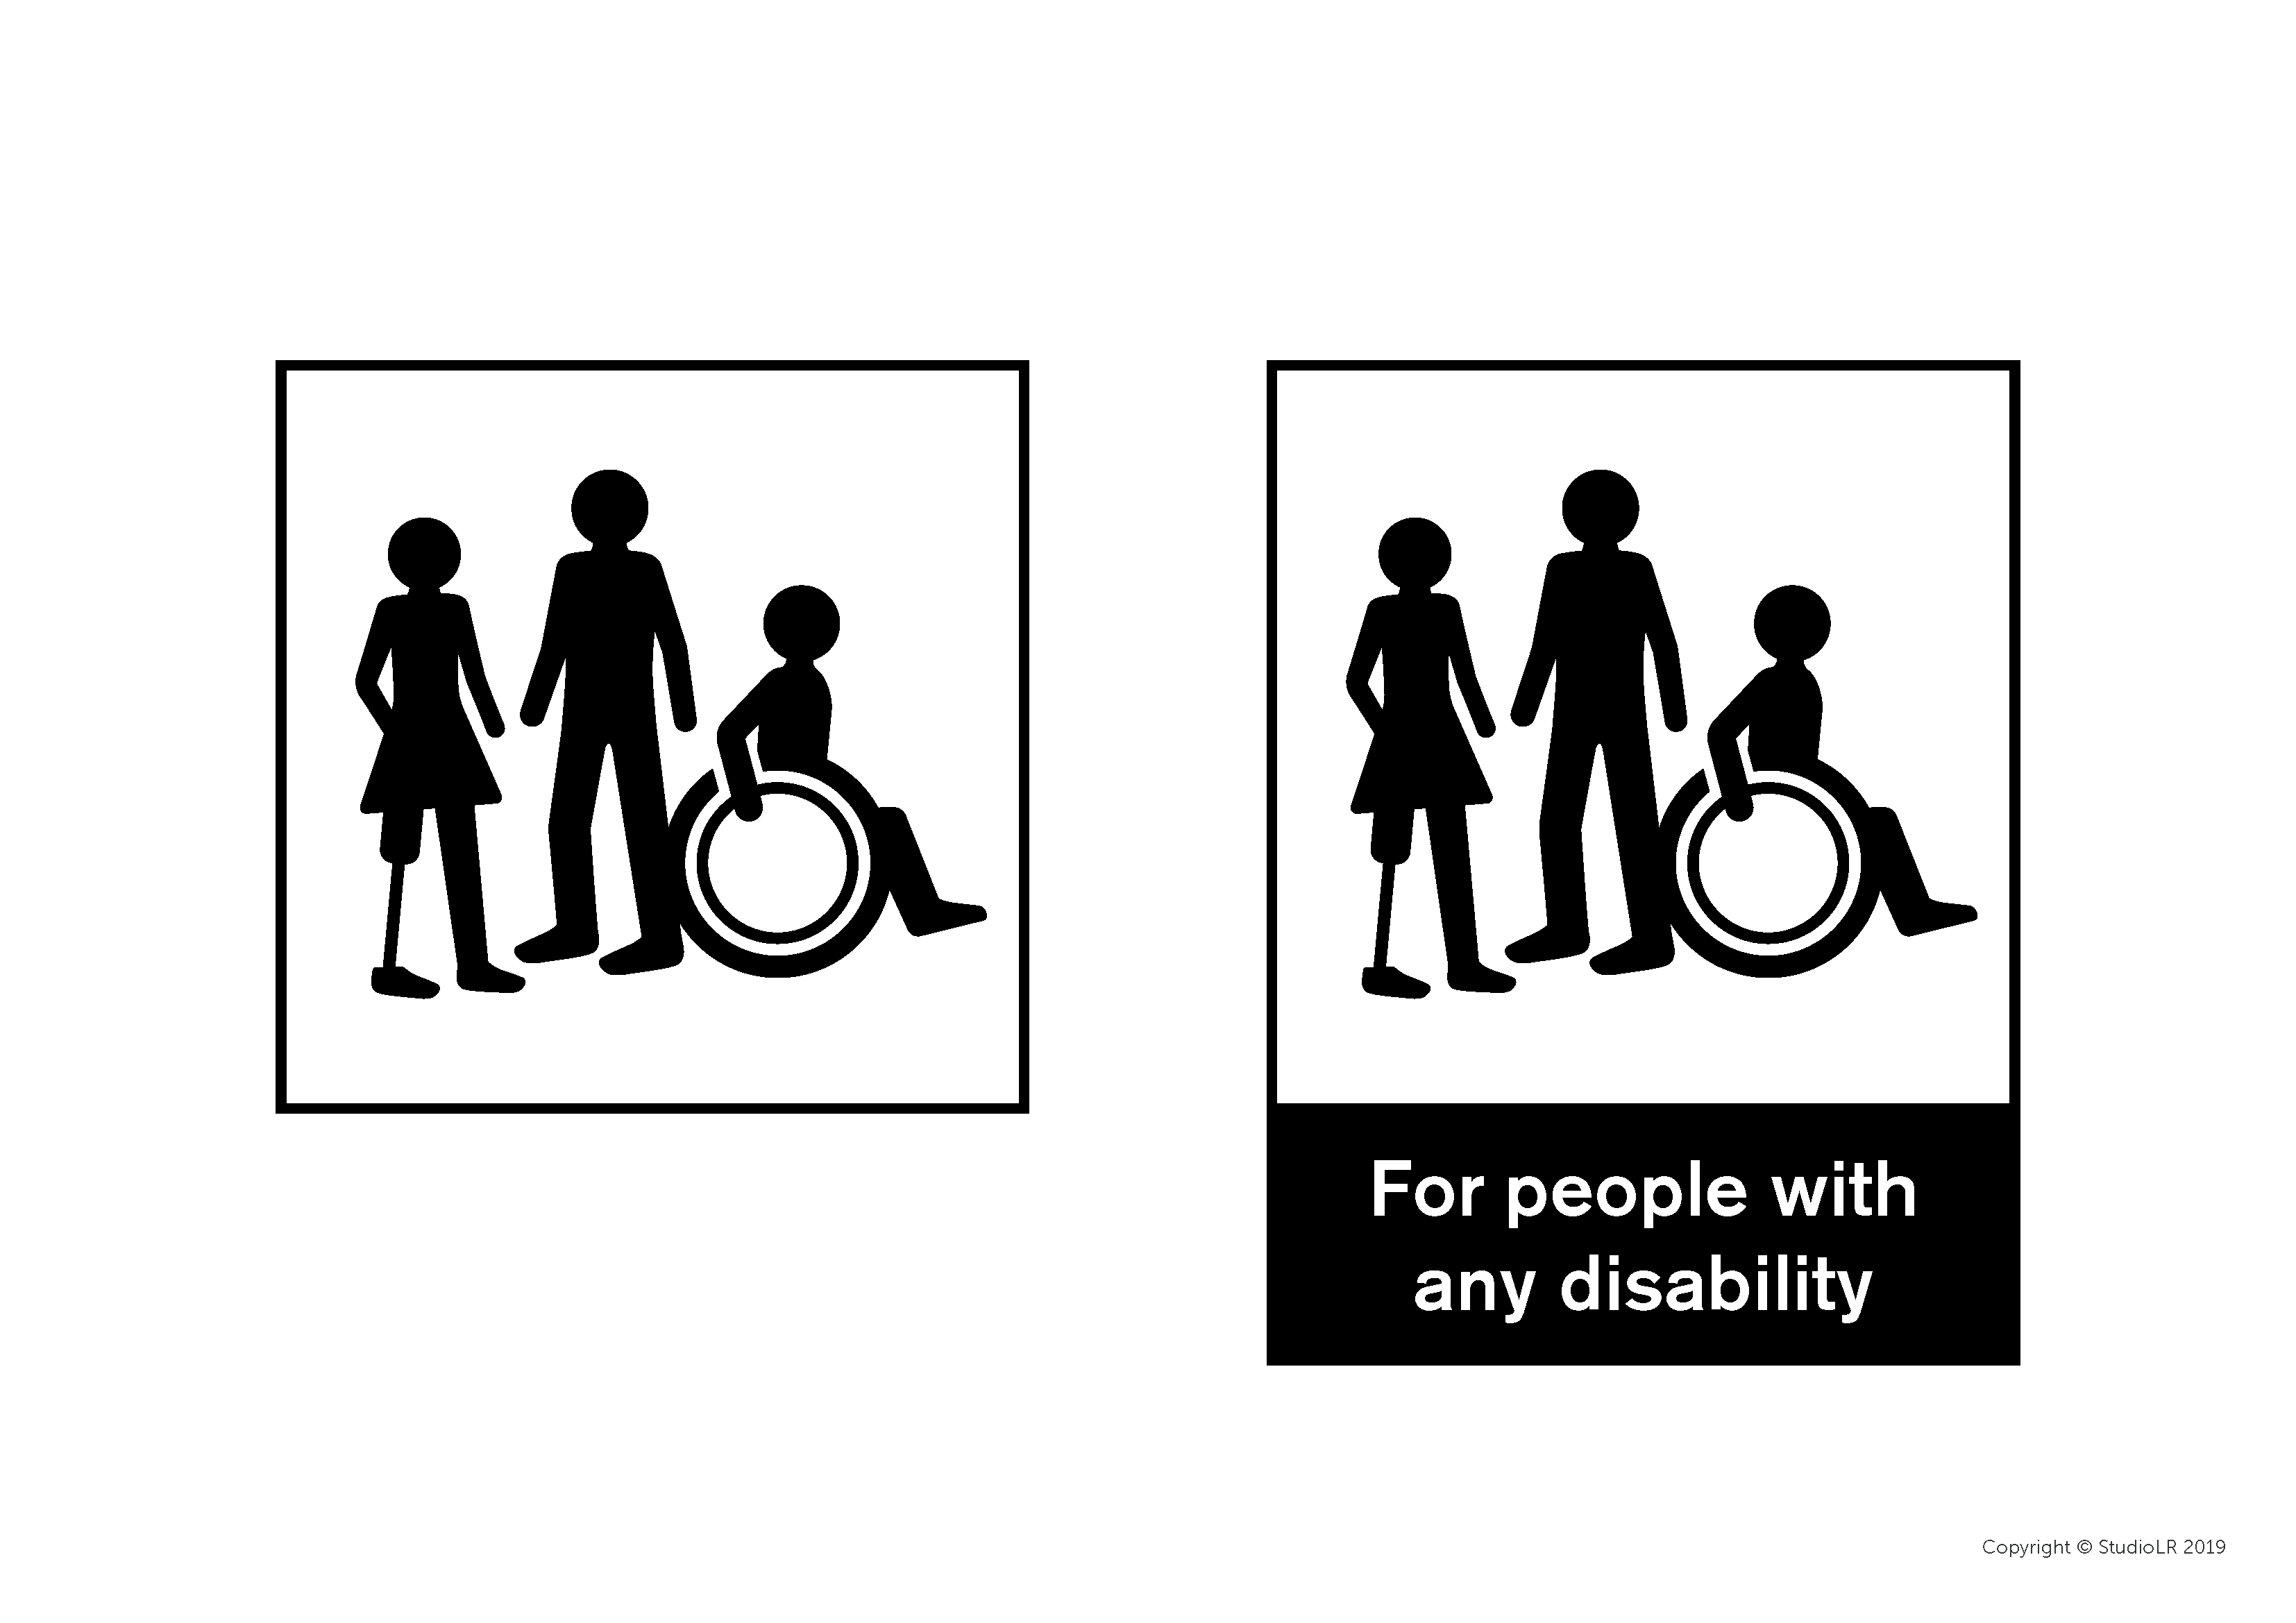 StudioLR any disability symbol, copyright StudioLR 2019